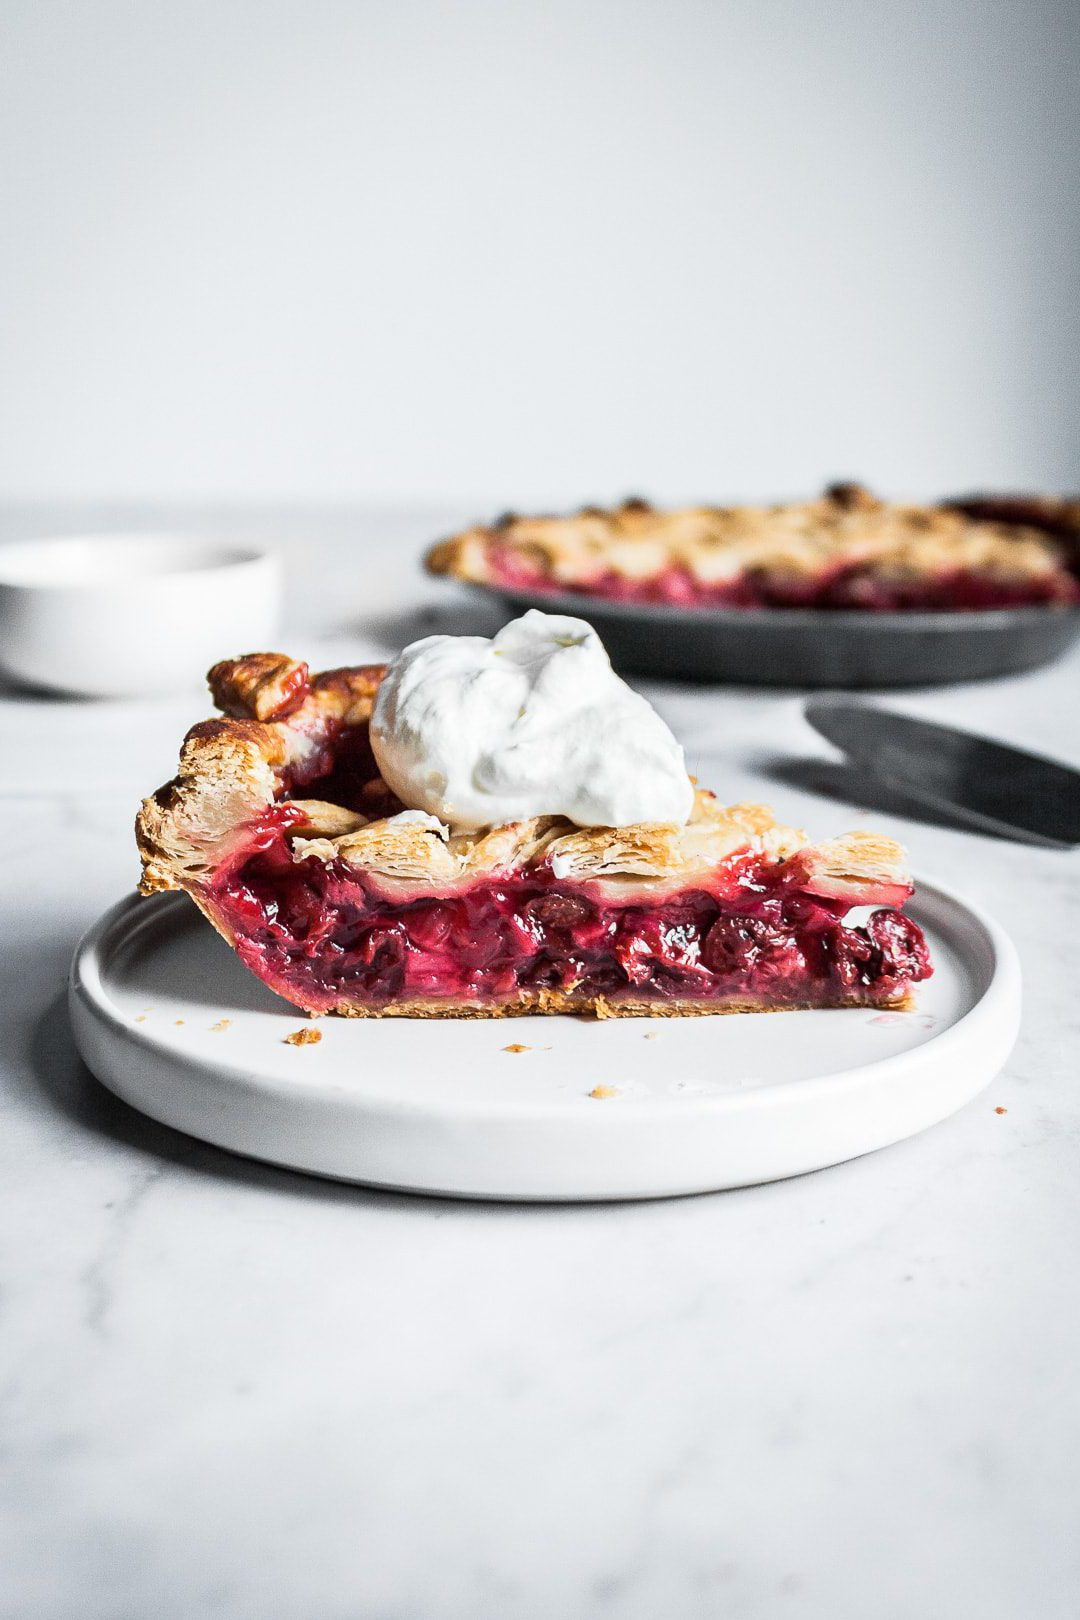 Slice of cherry rhubarb pie from side, with pie tin and serving utensils in background